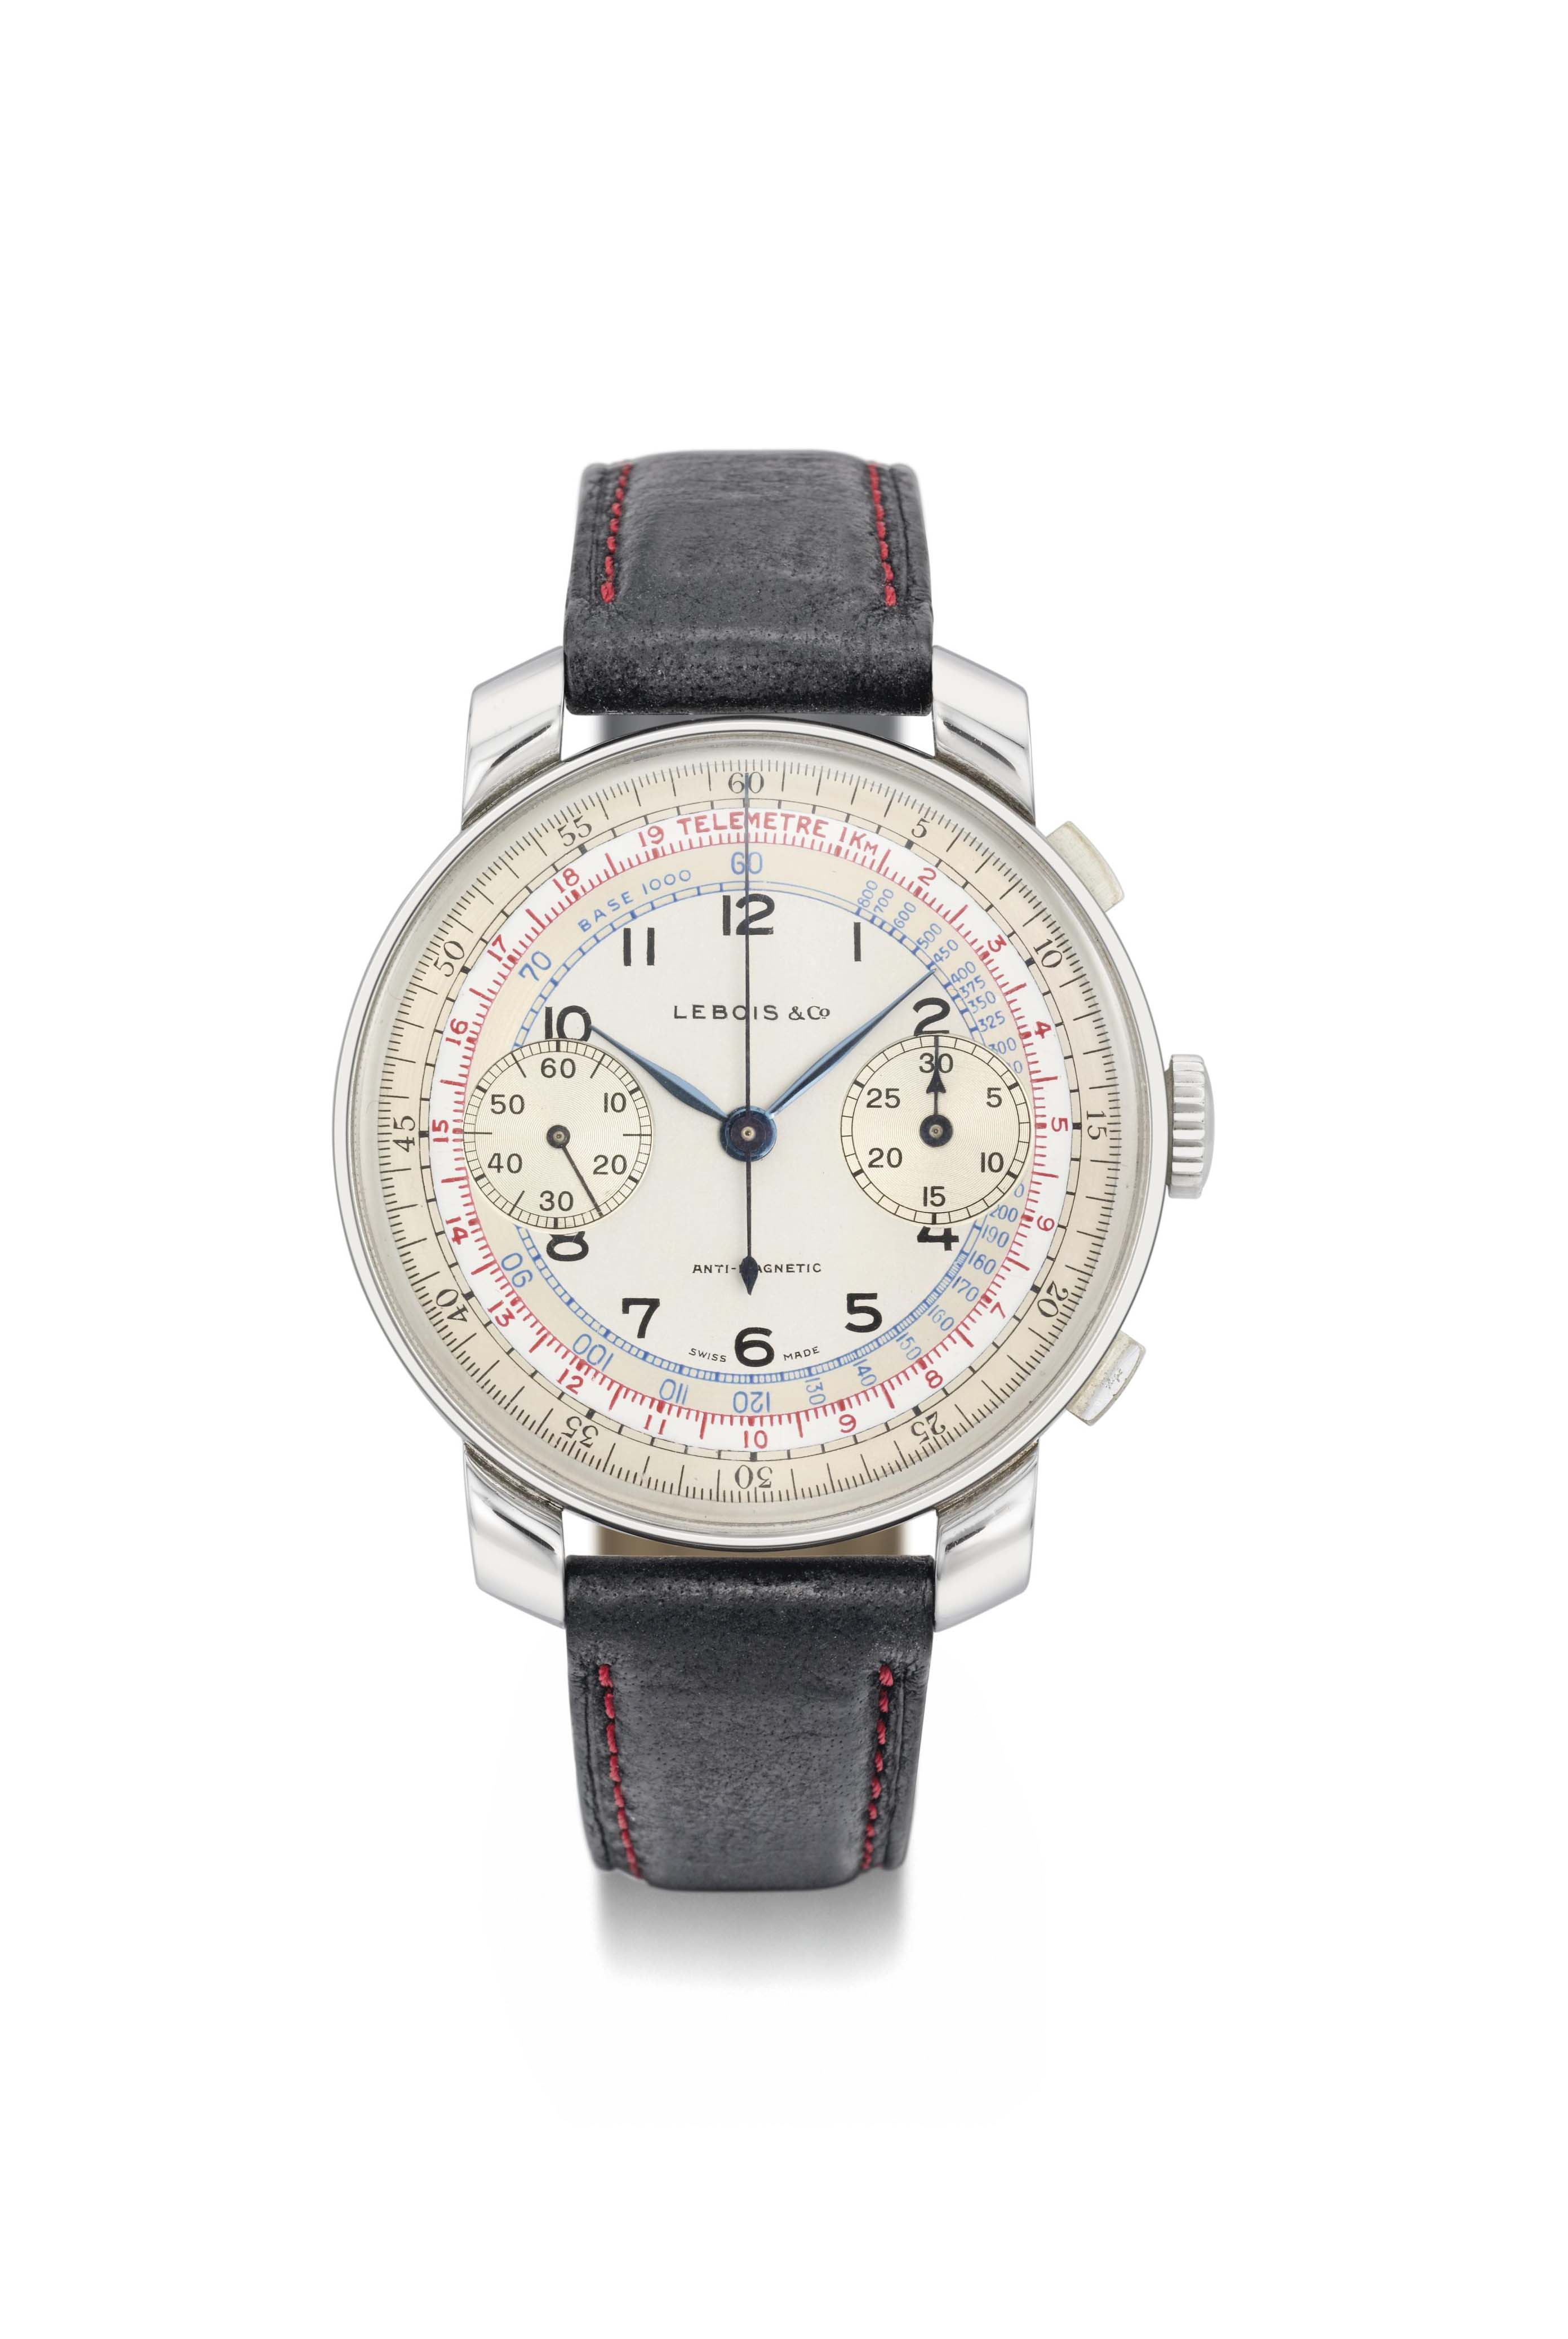 Lebois & Co. A large stainless steel chronograph wristwatch with two-tone silvered dial